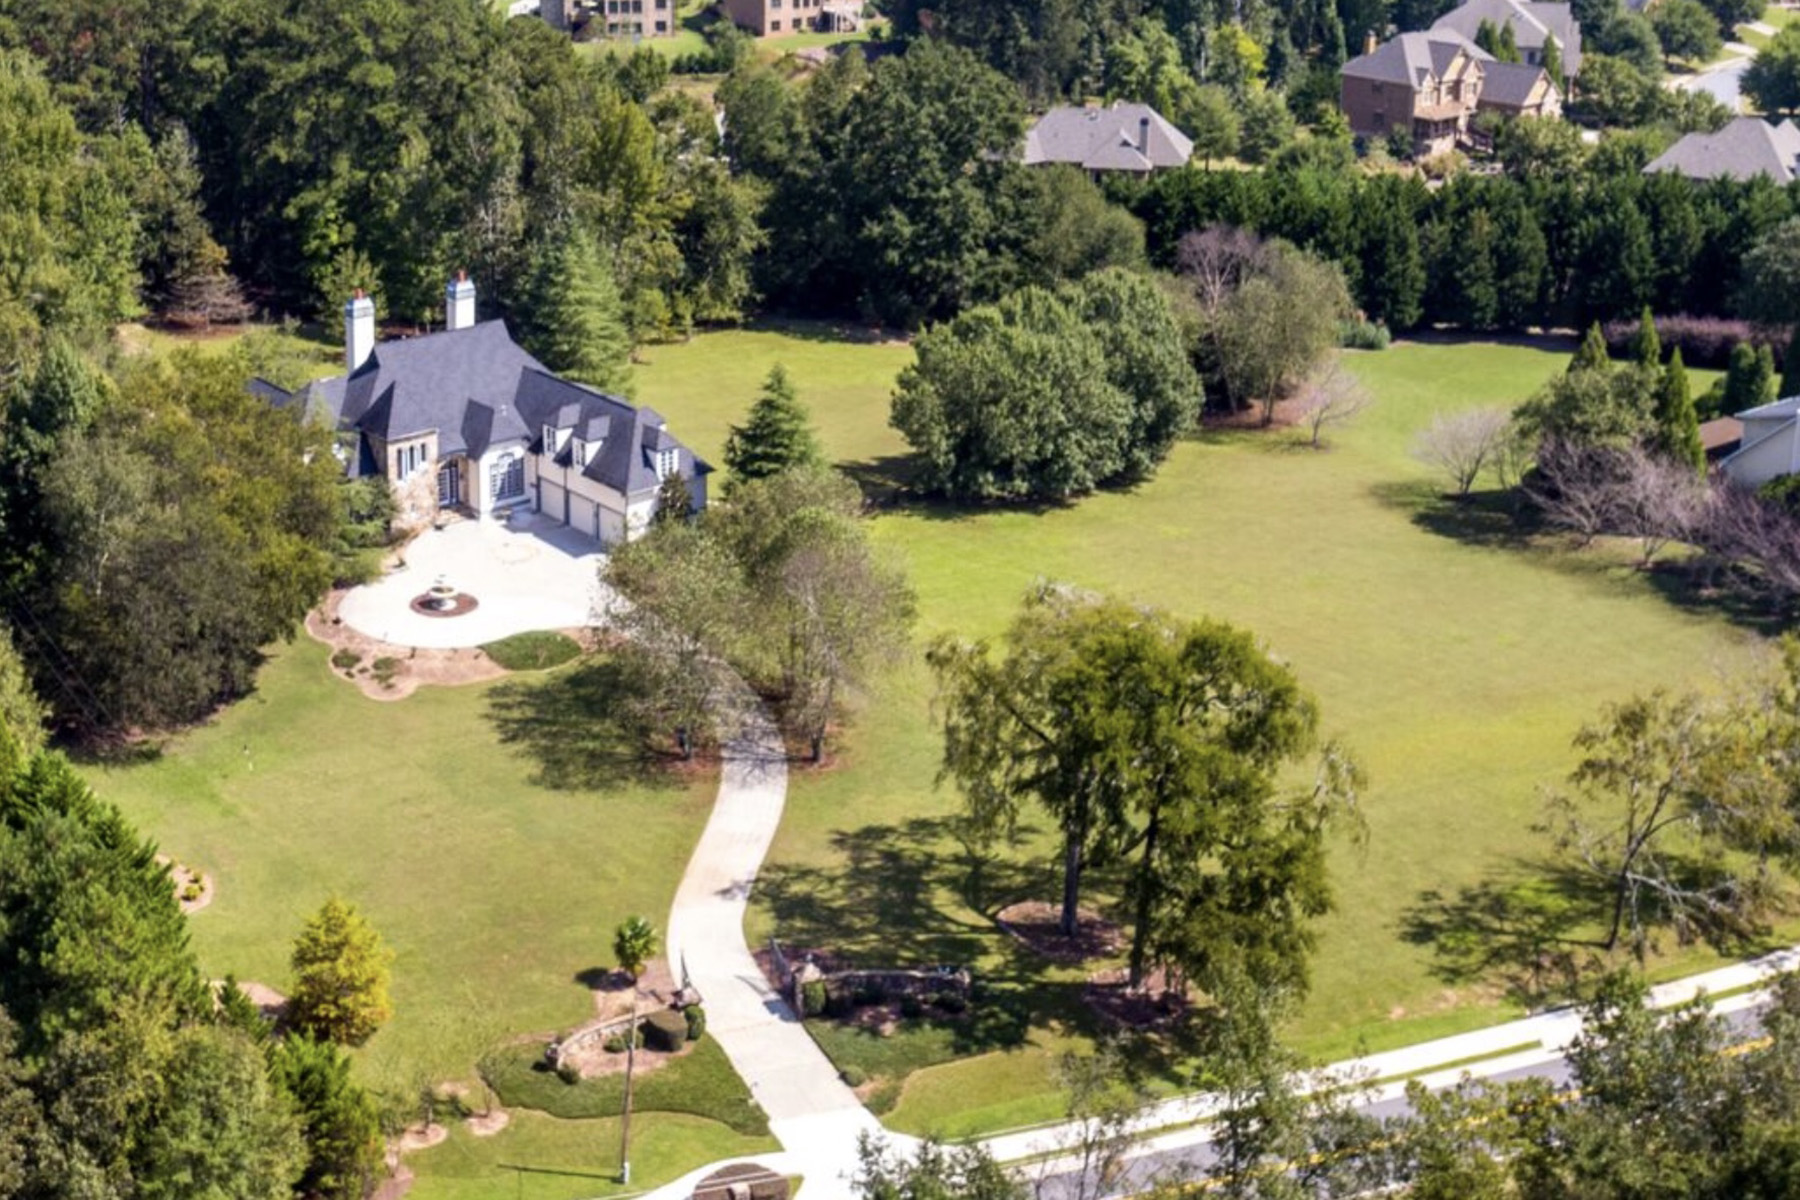 Single Family Home for Sale at Luxury Gated Estate 10987 Rogers Circle Johns Creek, Georgia 30097 United States